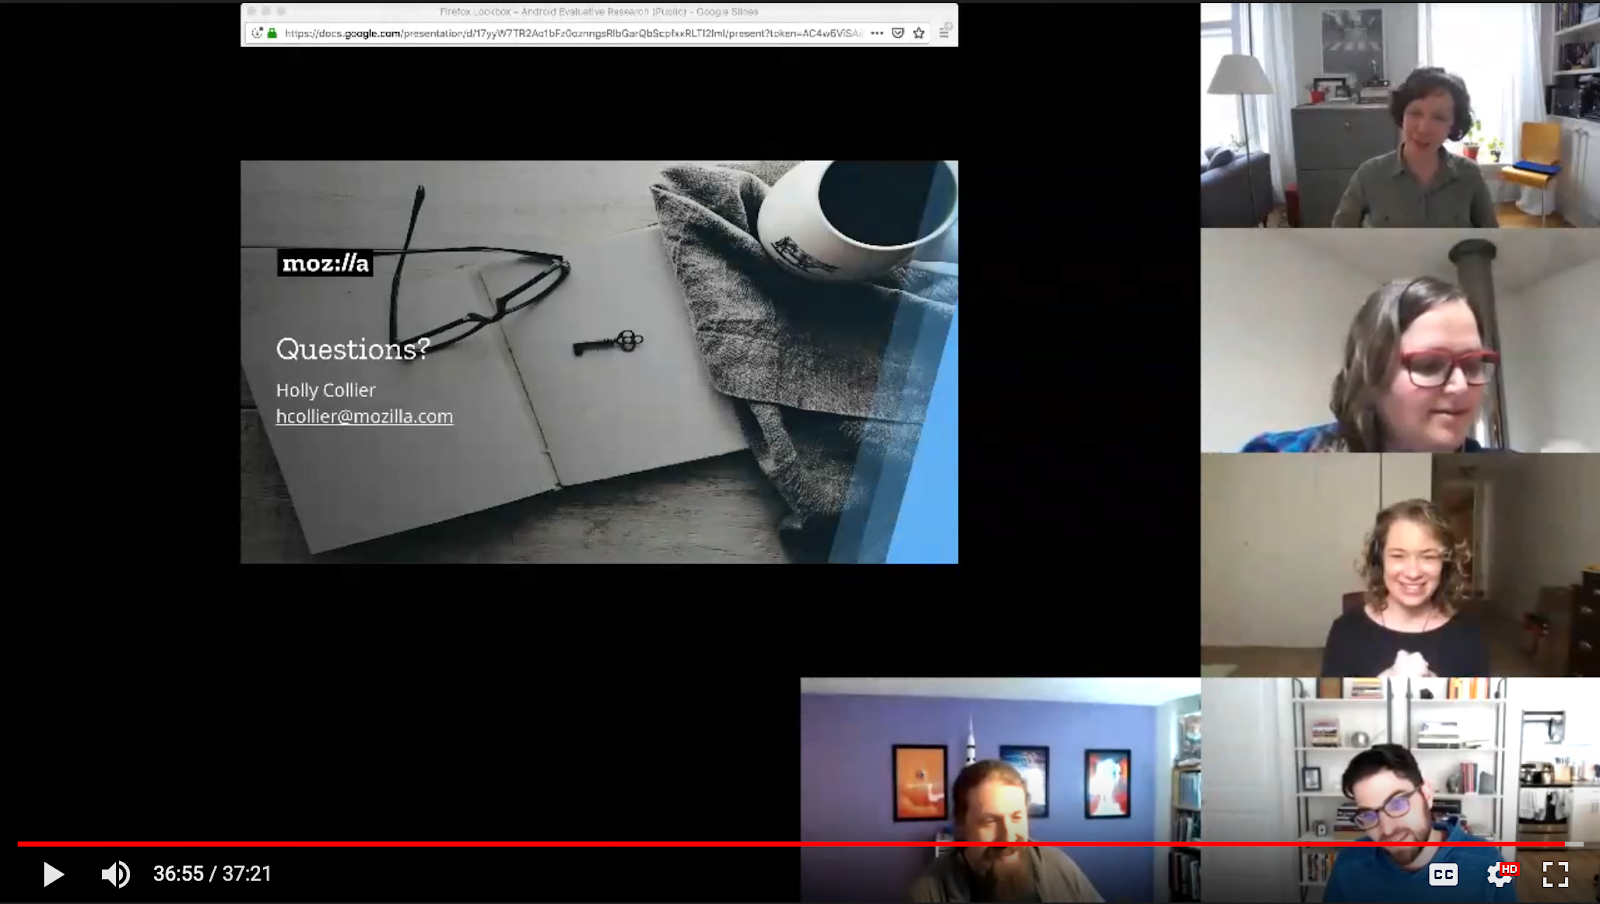 The videochat interface, showing the Lockwise for Android findings presentation and attendees' faces.